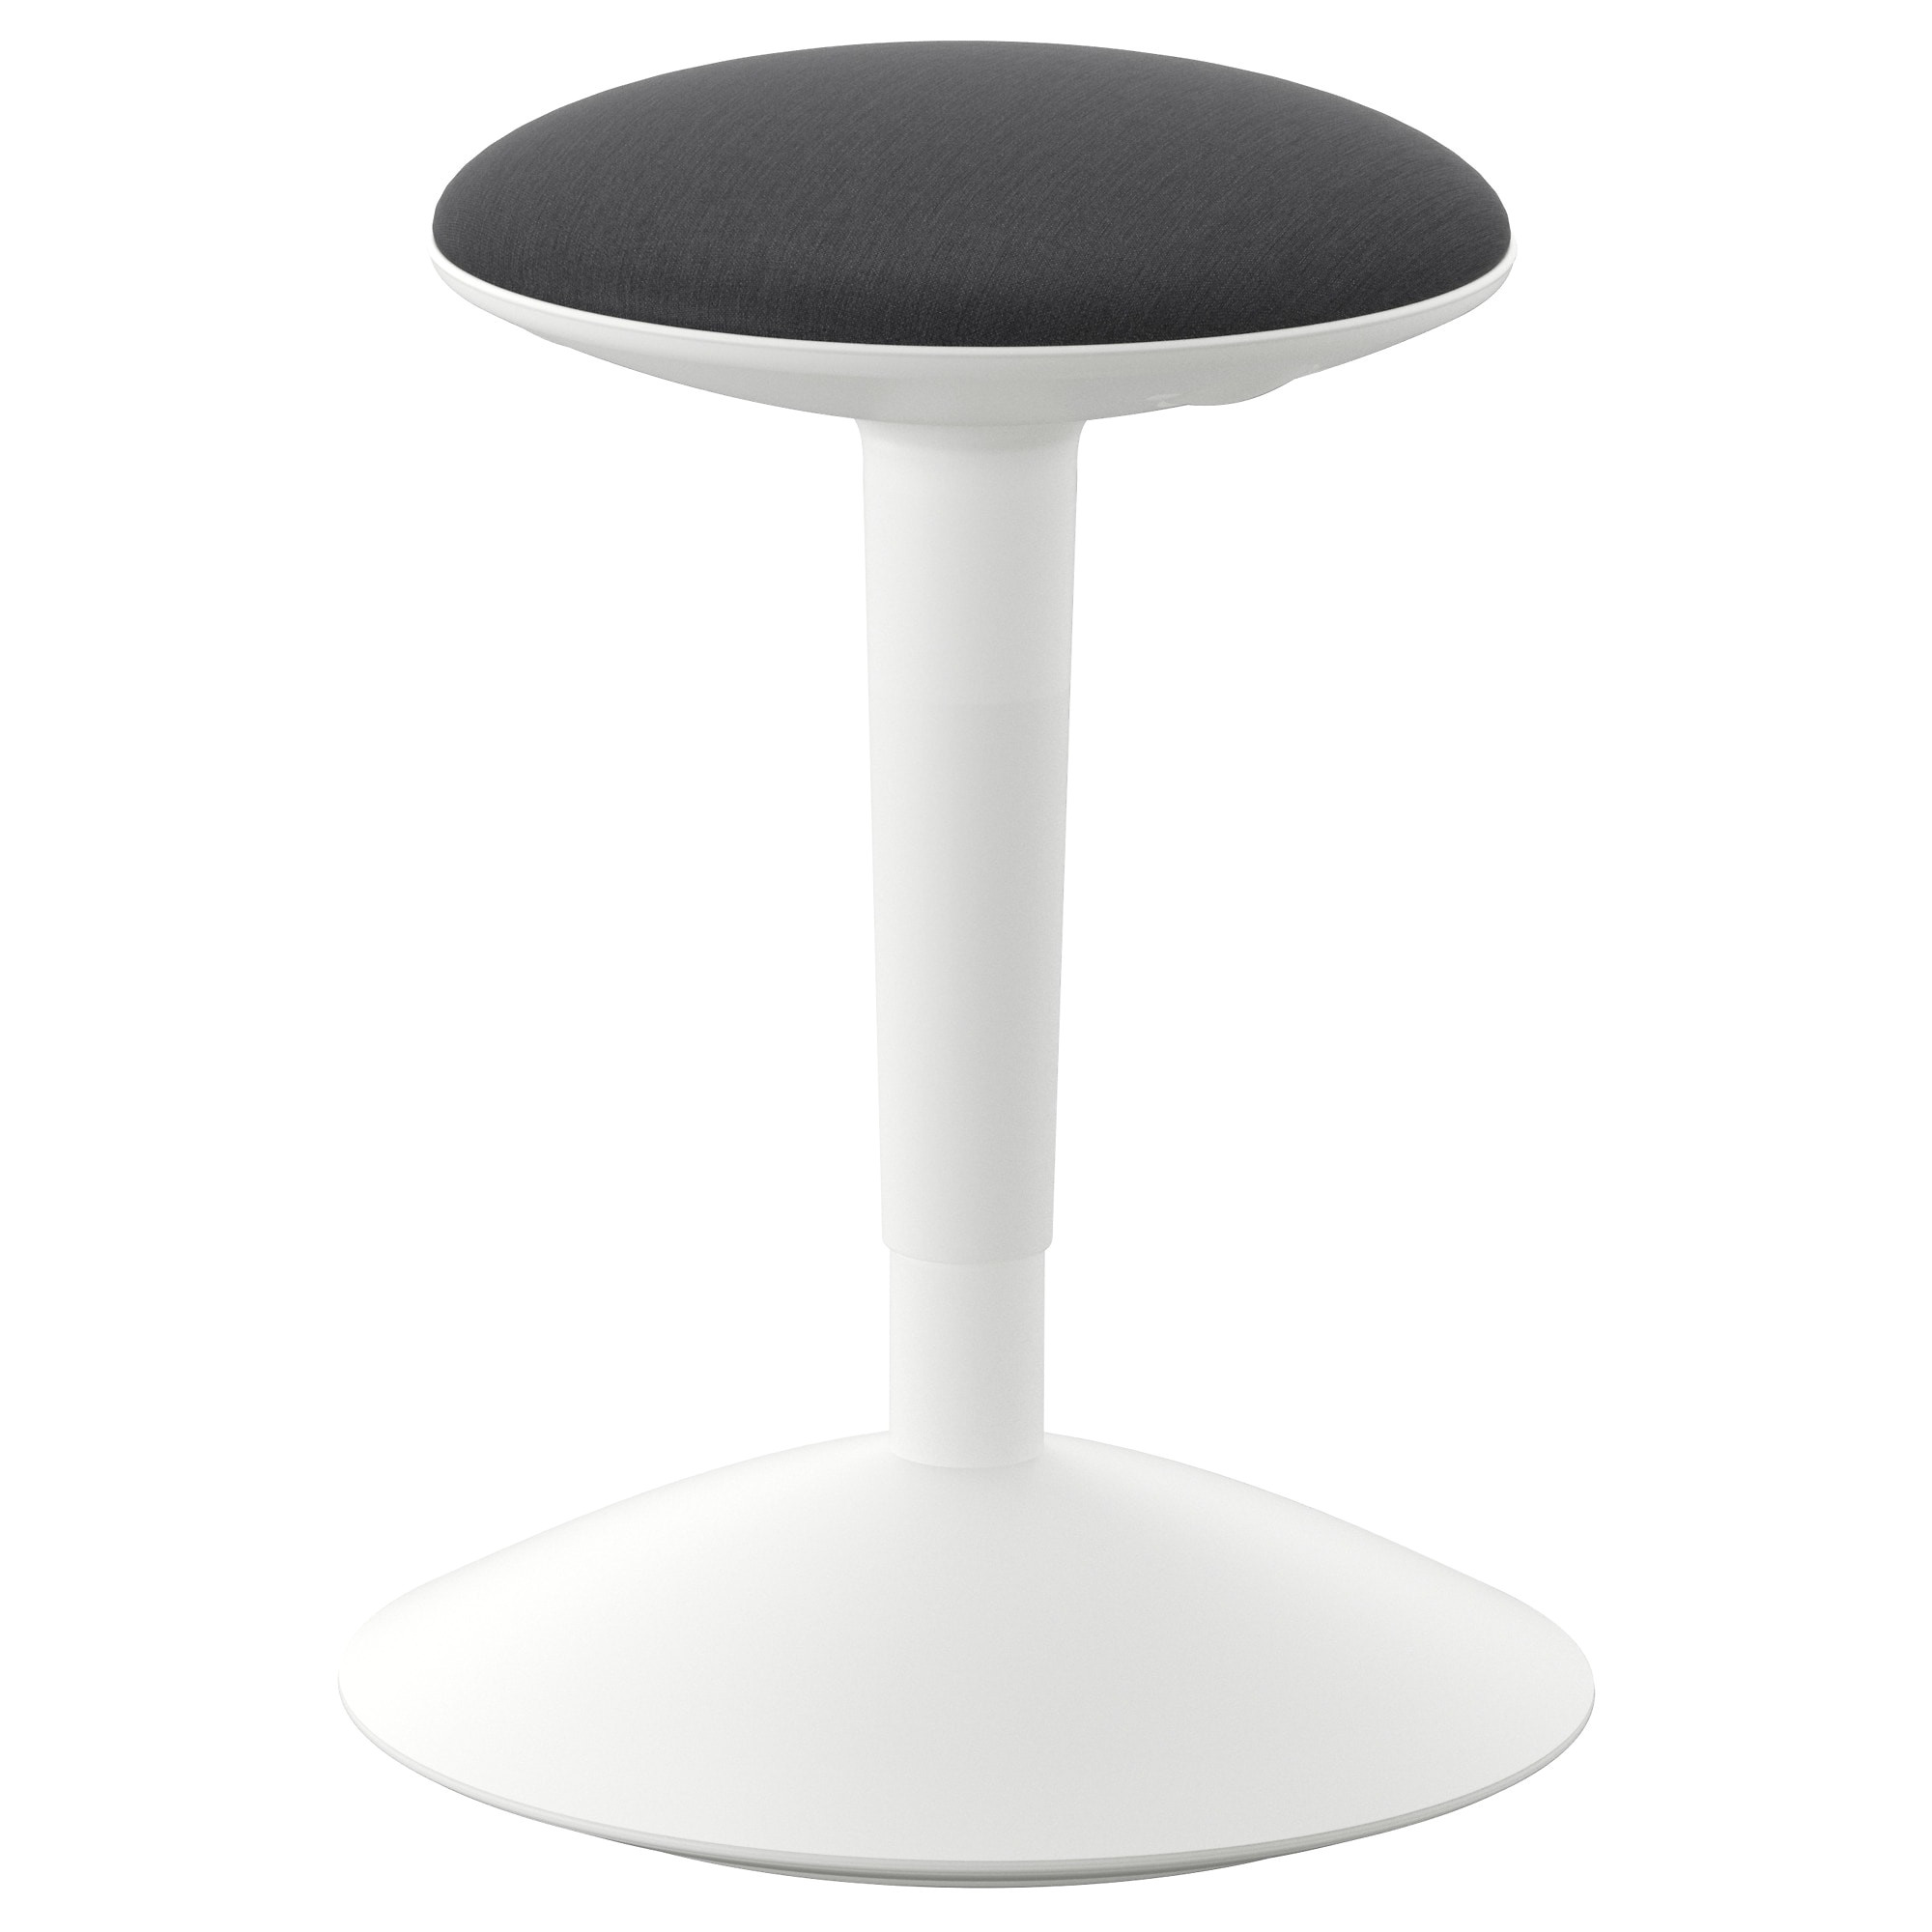 ikea nilserik standing support gives an active sitting position which improves your posture